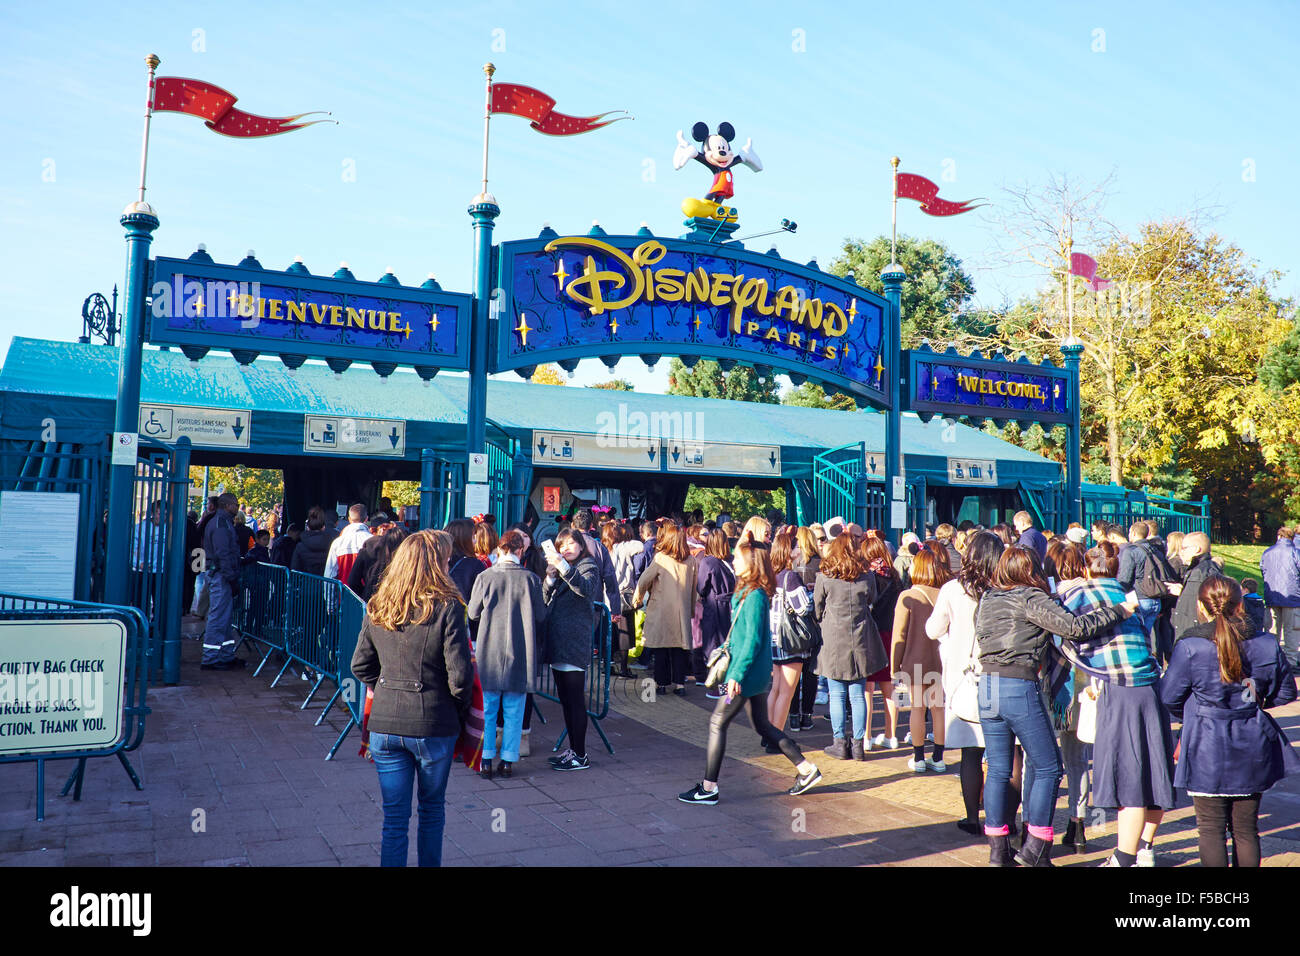 queuing to enter disneyland paris marne la vallee chessy france stock photo royalty free image. Black Bedroom Furniture Sets. Home Design Ideas